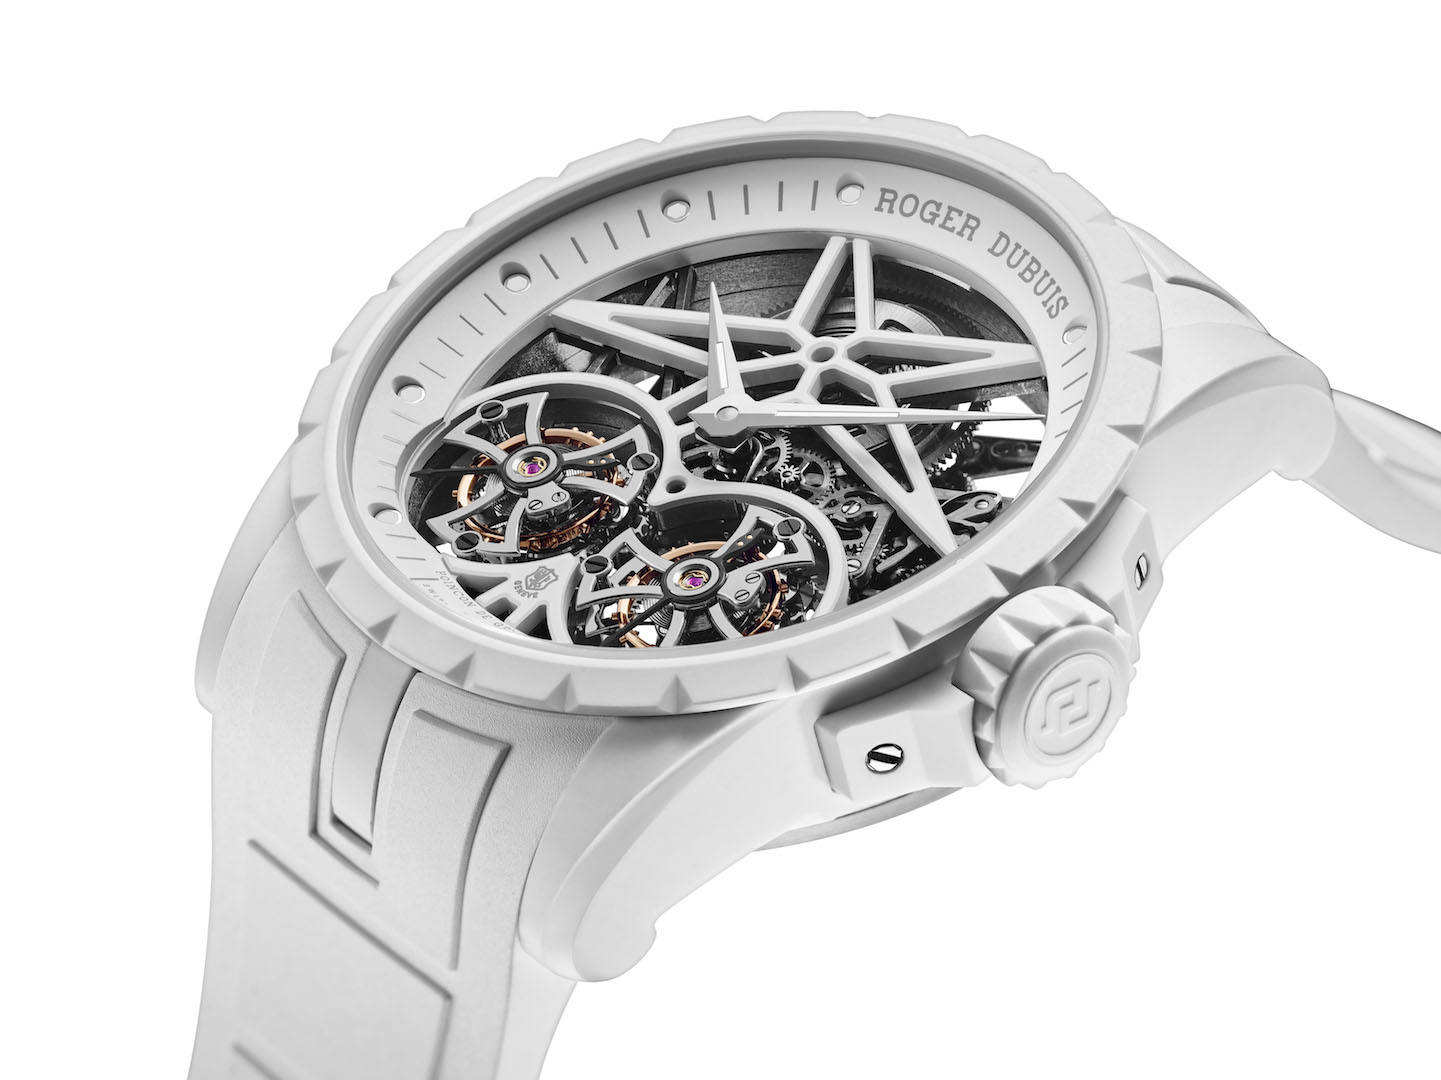 Roger Dubuis Excalibur Twofold Excalibur